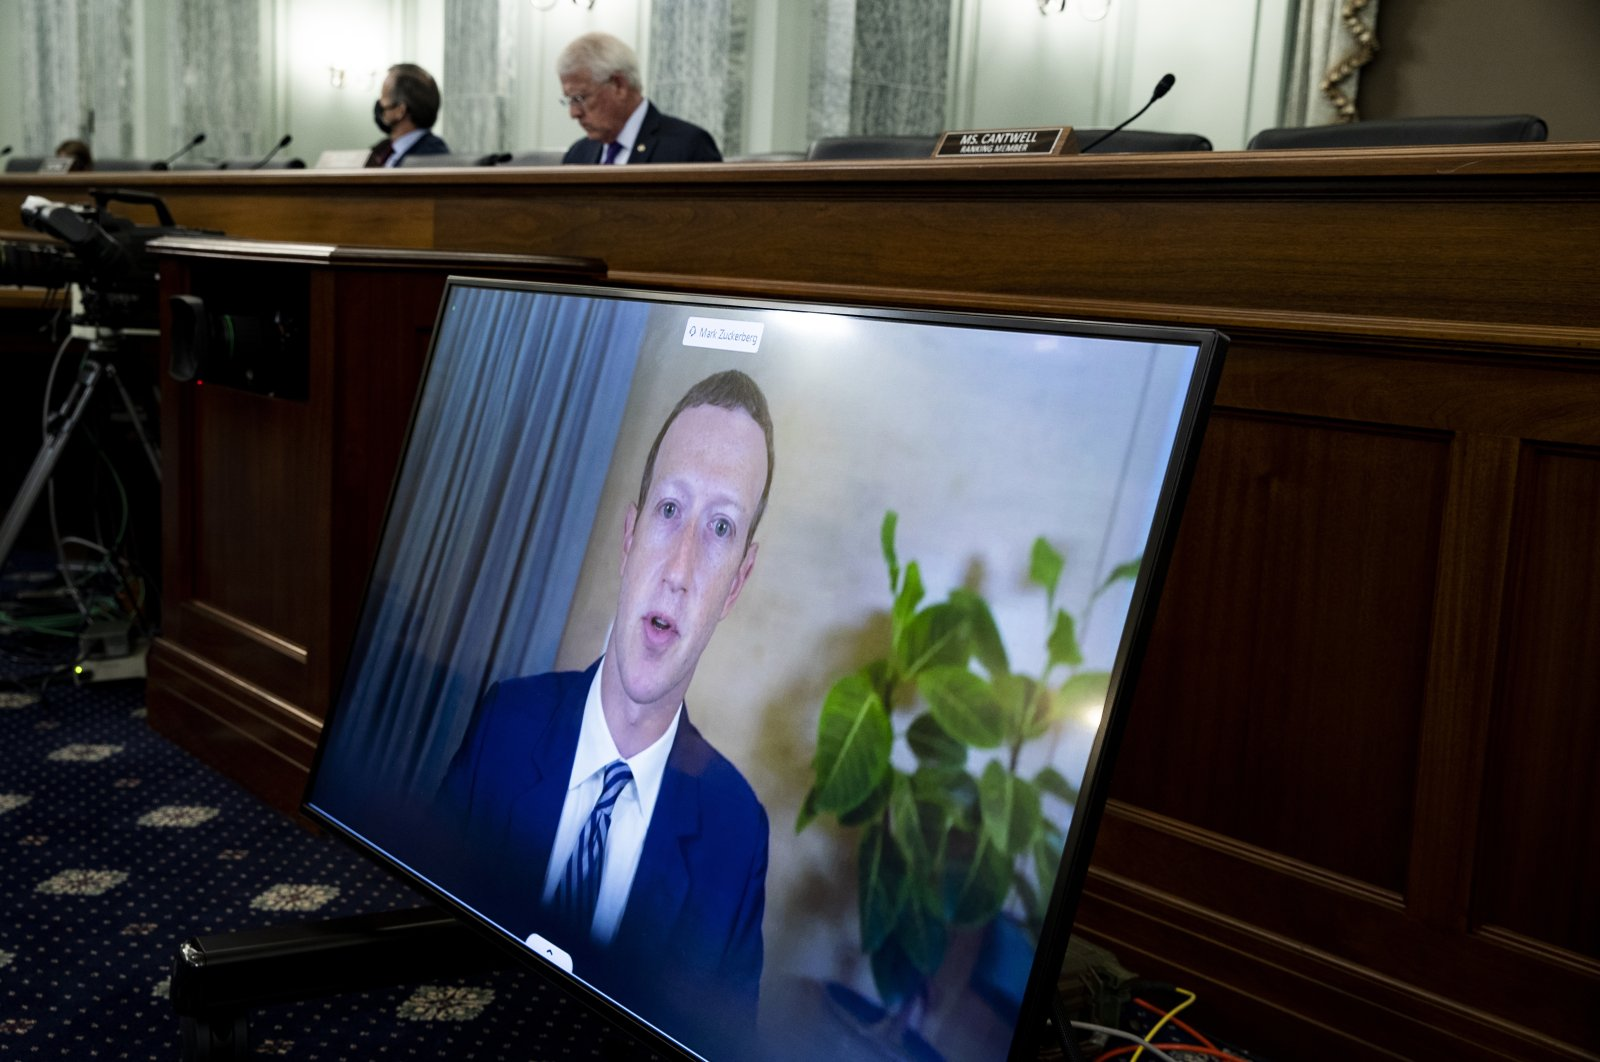 Facebook CEO Mark Zuckerberg appears on a screen as he speaks remotely during a hearing before the Senate Commerce Committee on Capitol Hill, Washington, U.S., Oct. 28, 2020. (AP Photo)